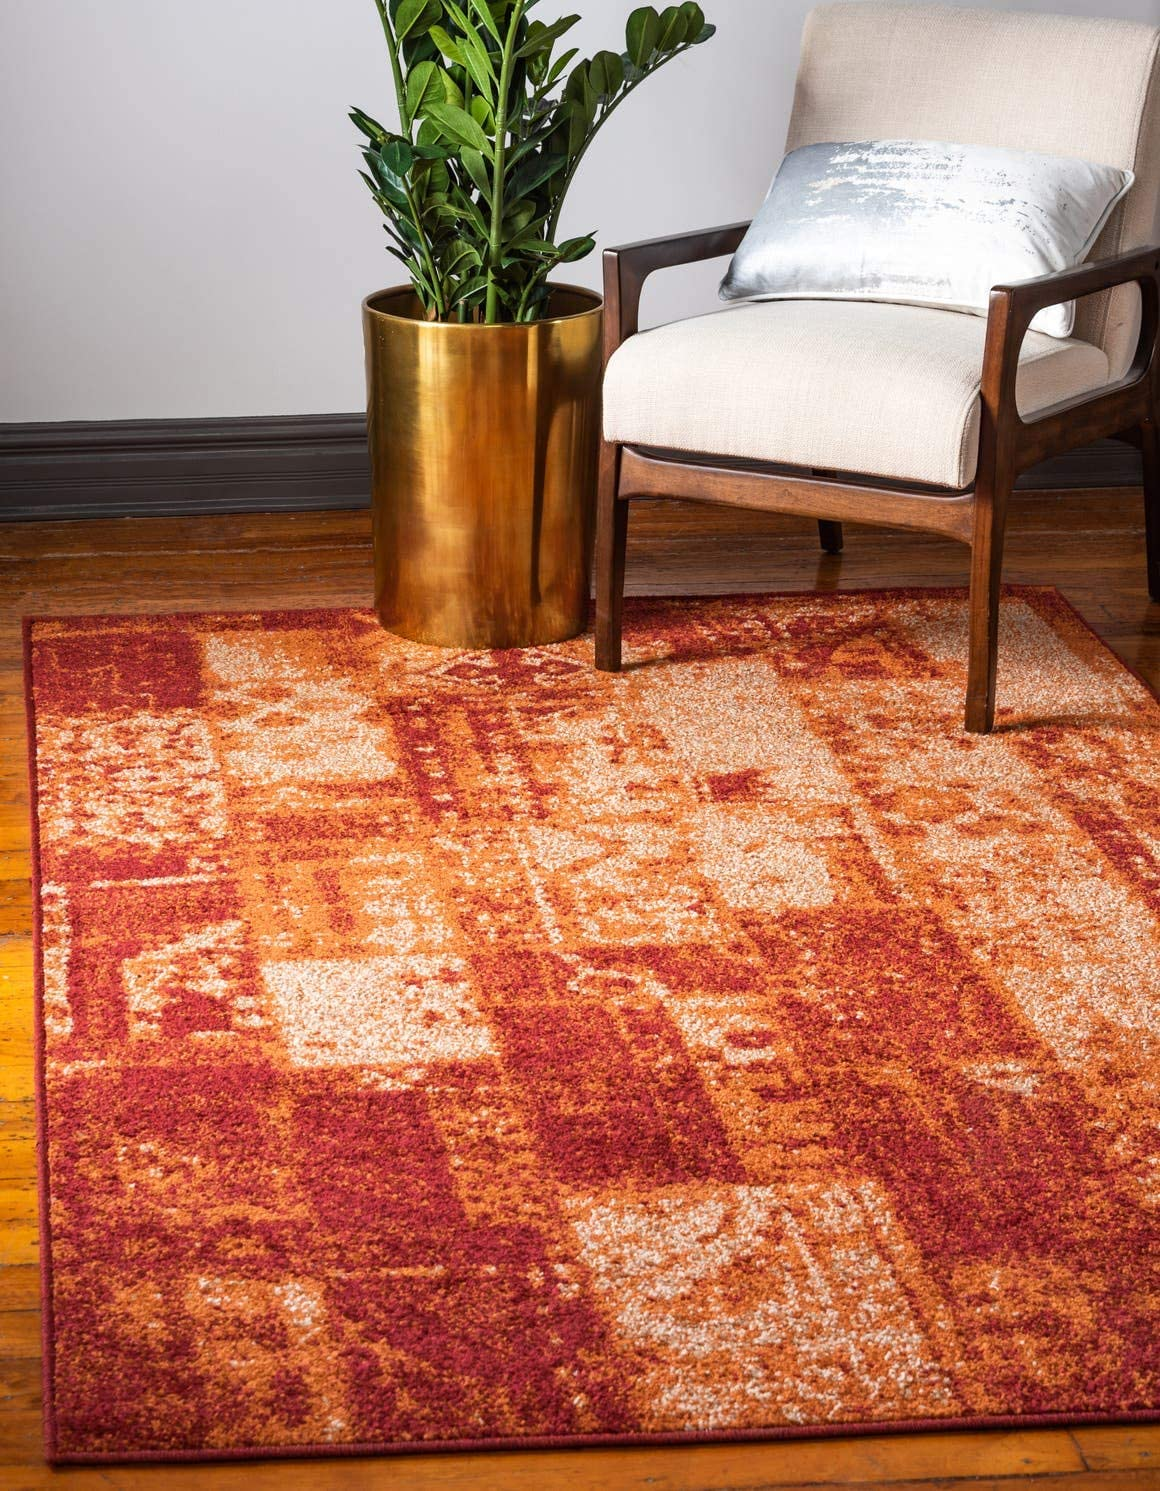 Unique Loom Autumn Collection Vintage Rustic Casual Warm Toned Terracotta Area Rug 8 0 x 10 0